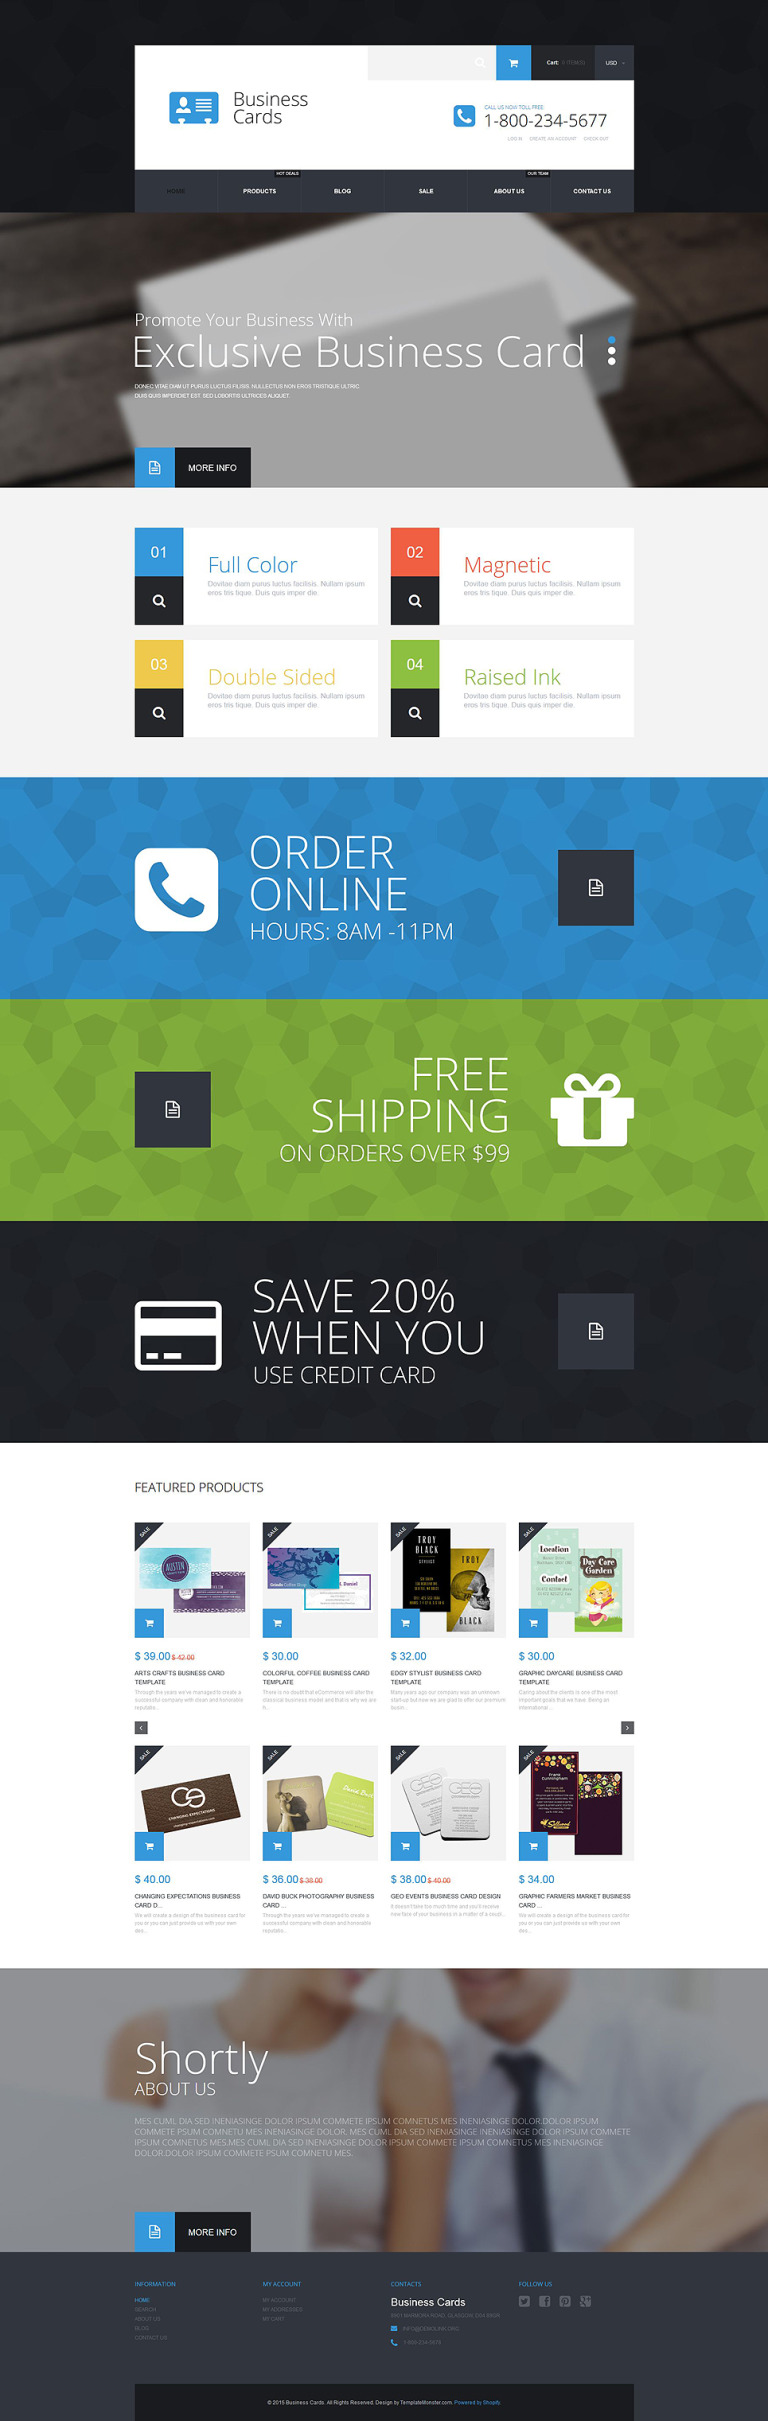 Business Cards Store Shopify Theme New Screenshots BIG